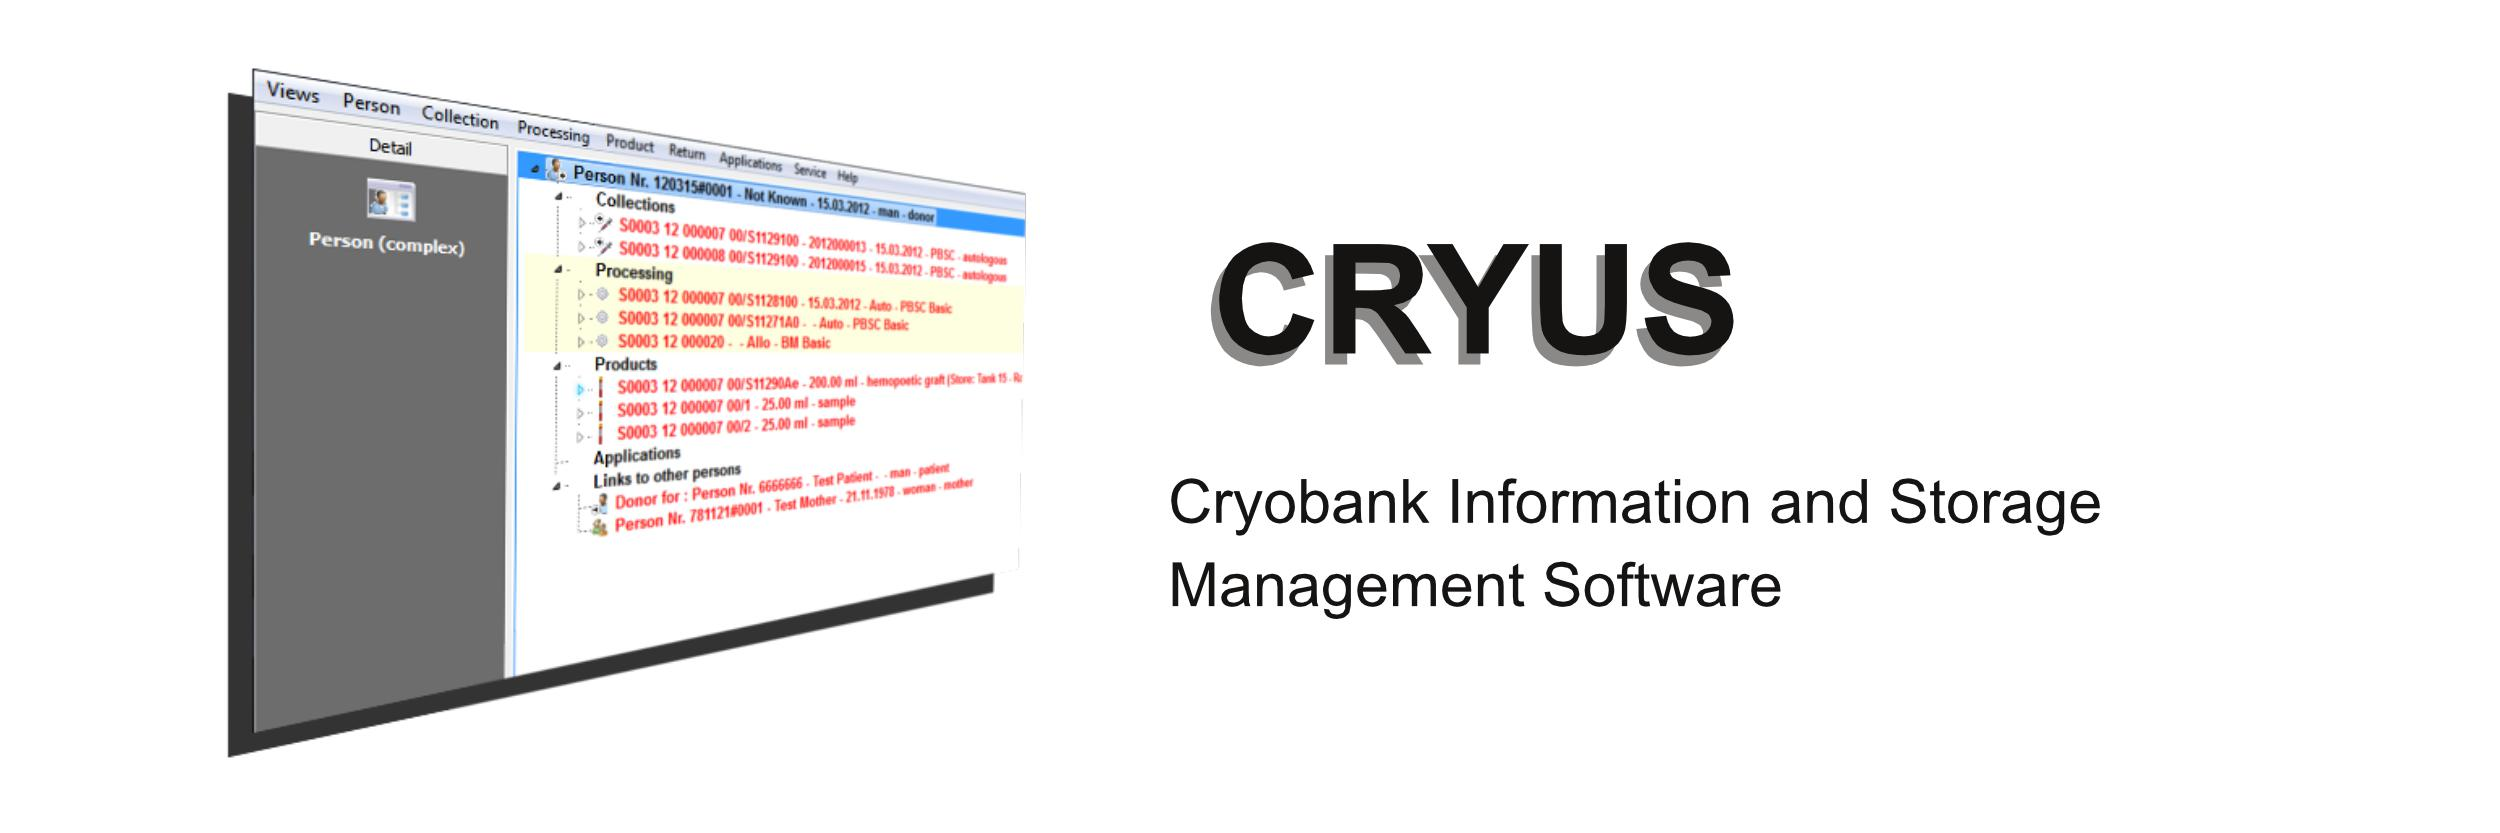 CRYUS - Cryobank Information and Storage Management Software